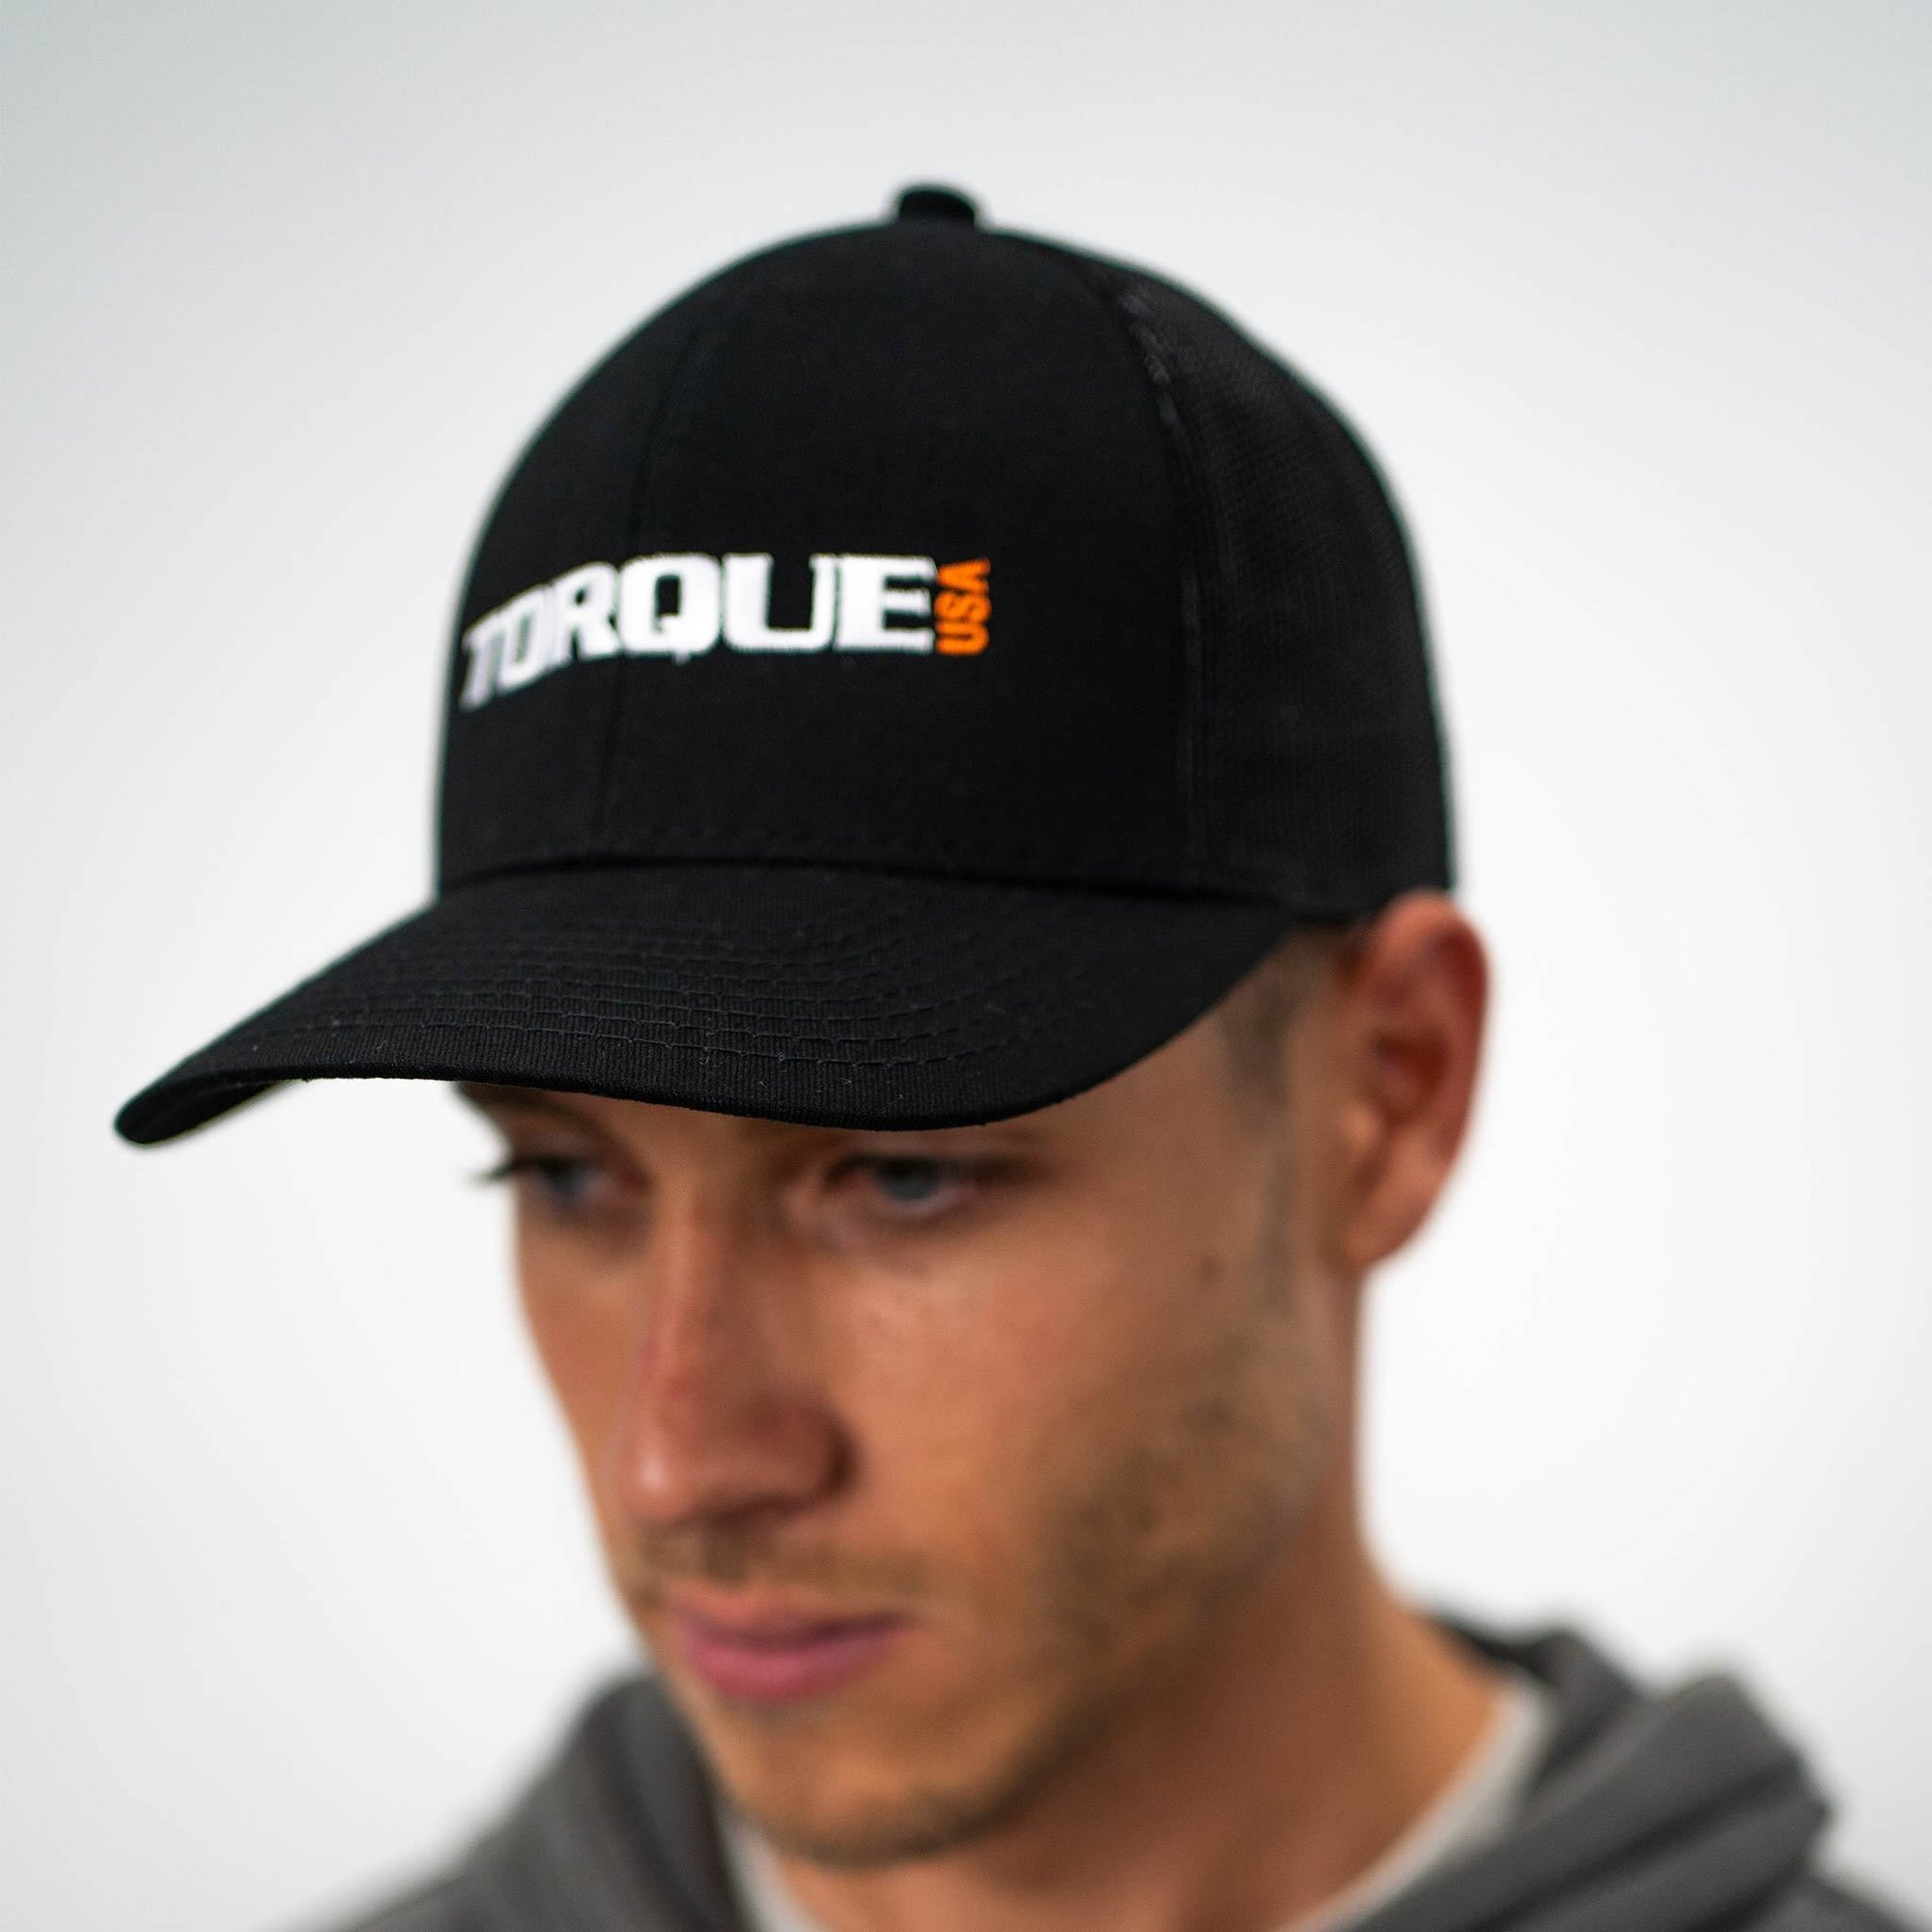 Man wearing black Torque baseball hat